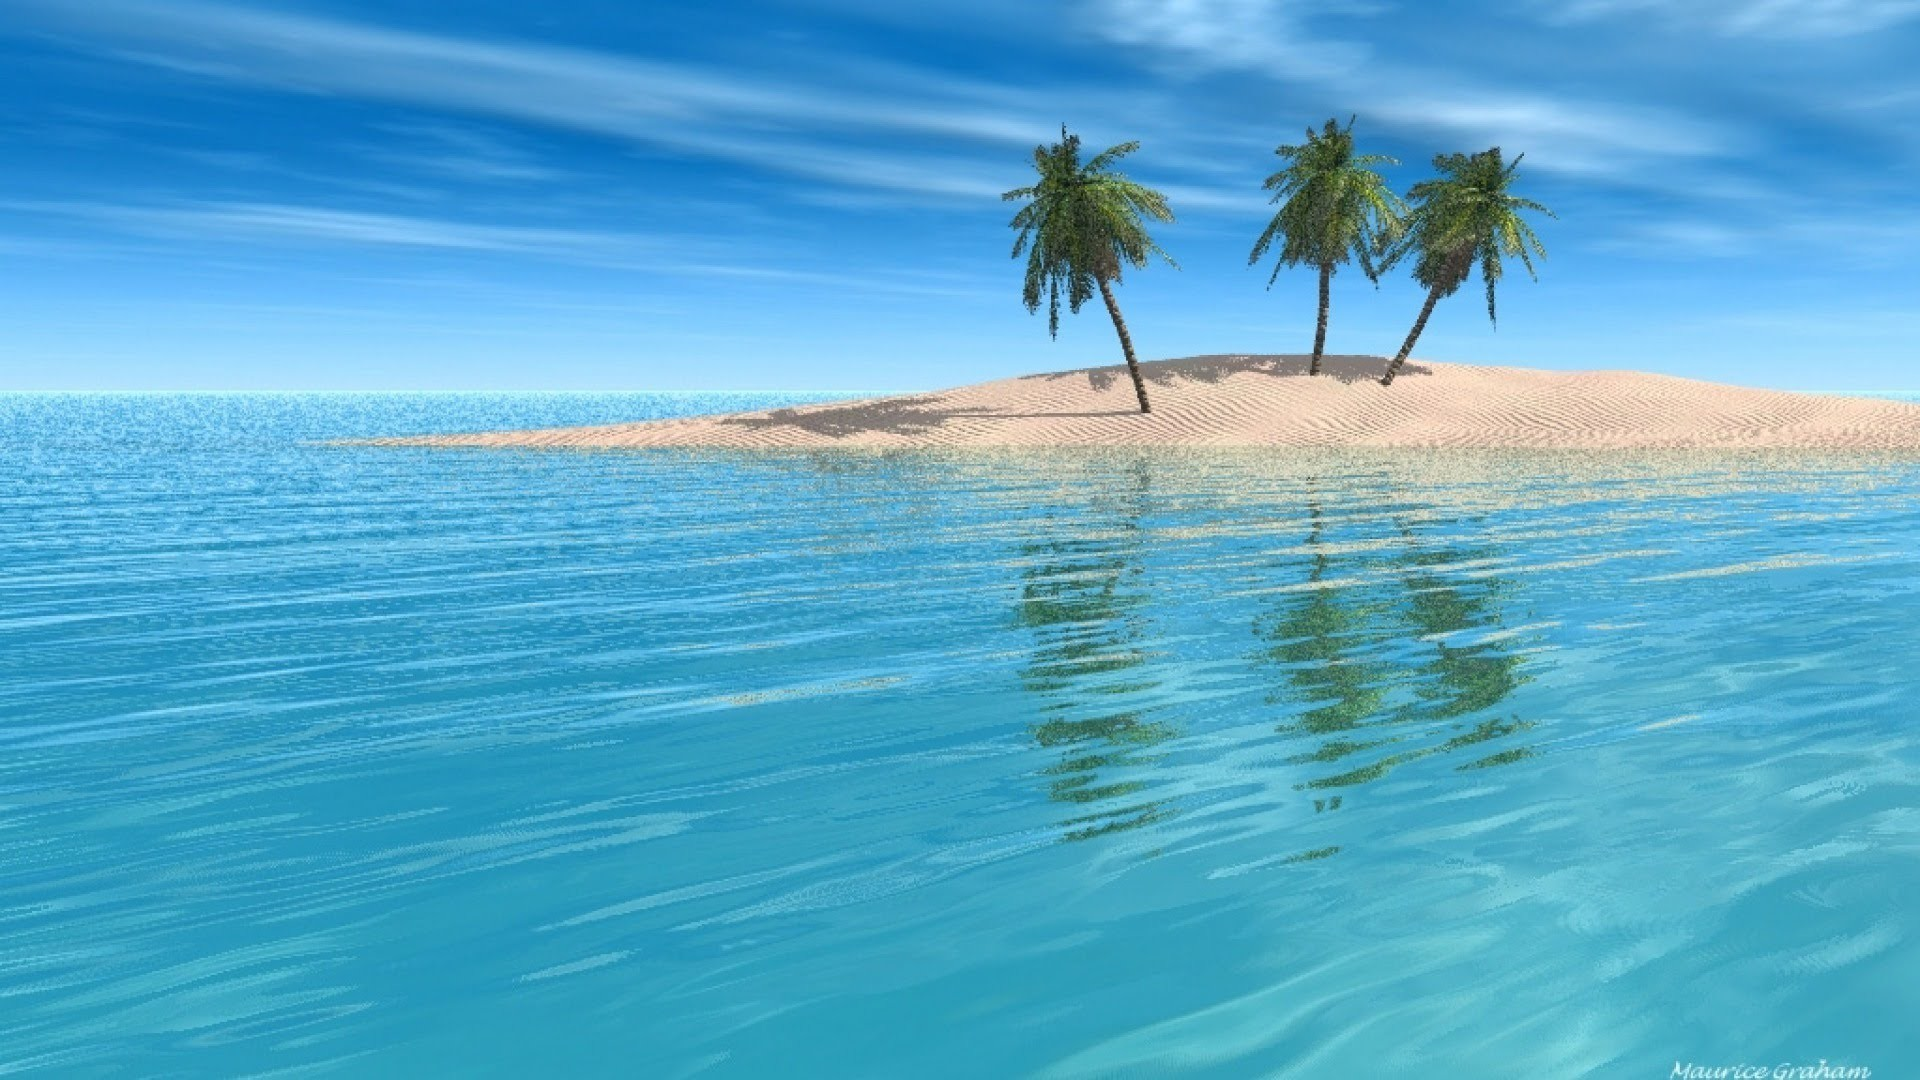 island background pictures (48+ images)